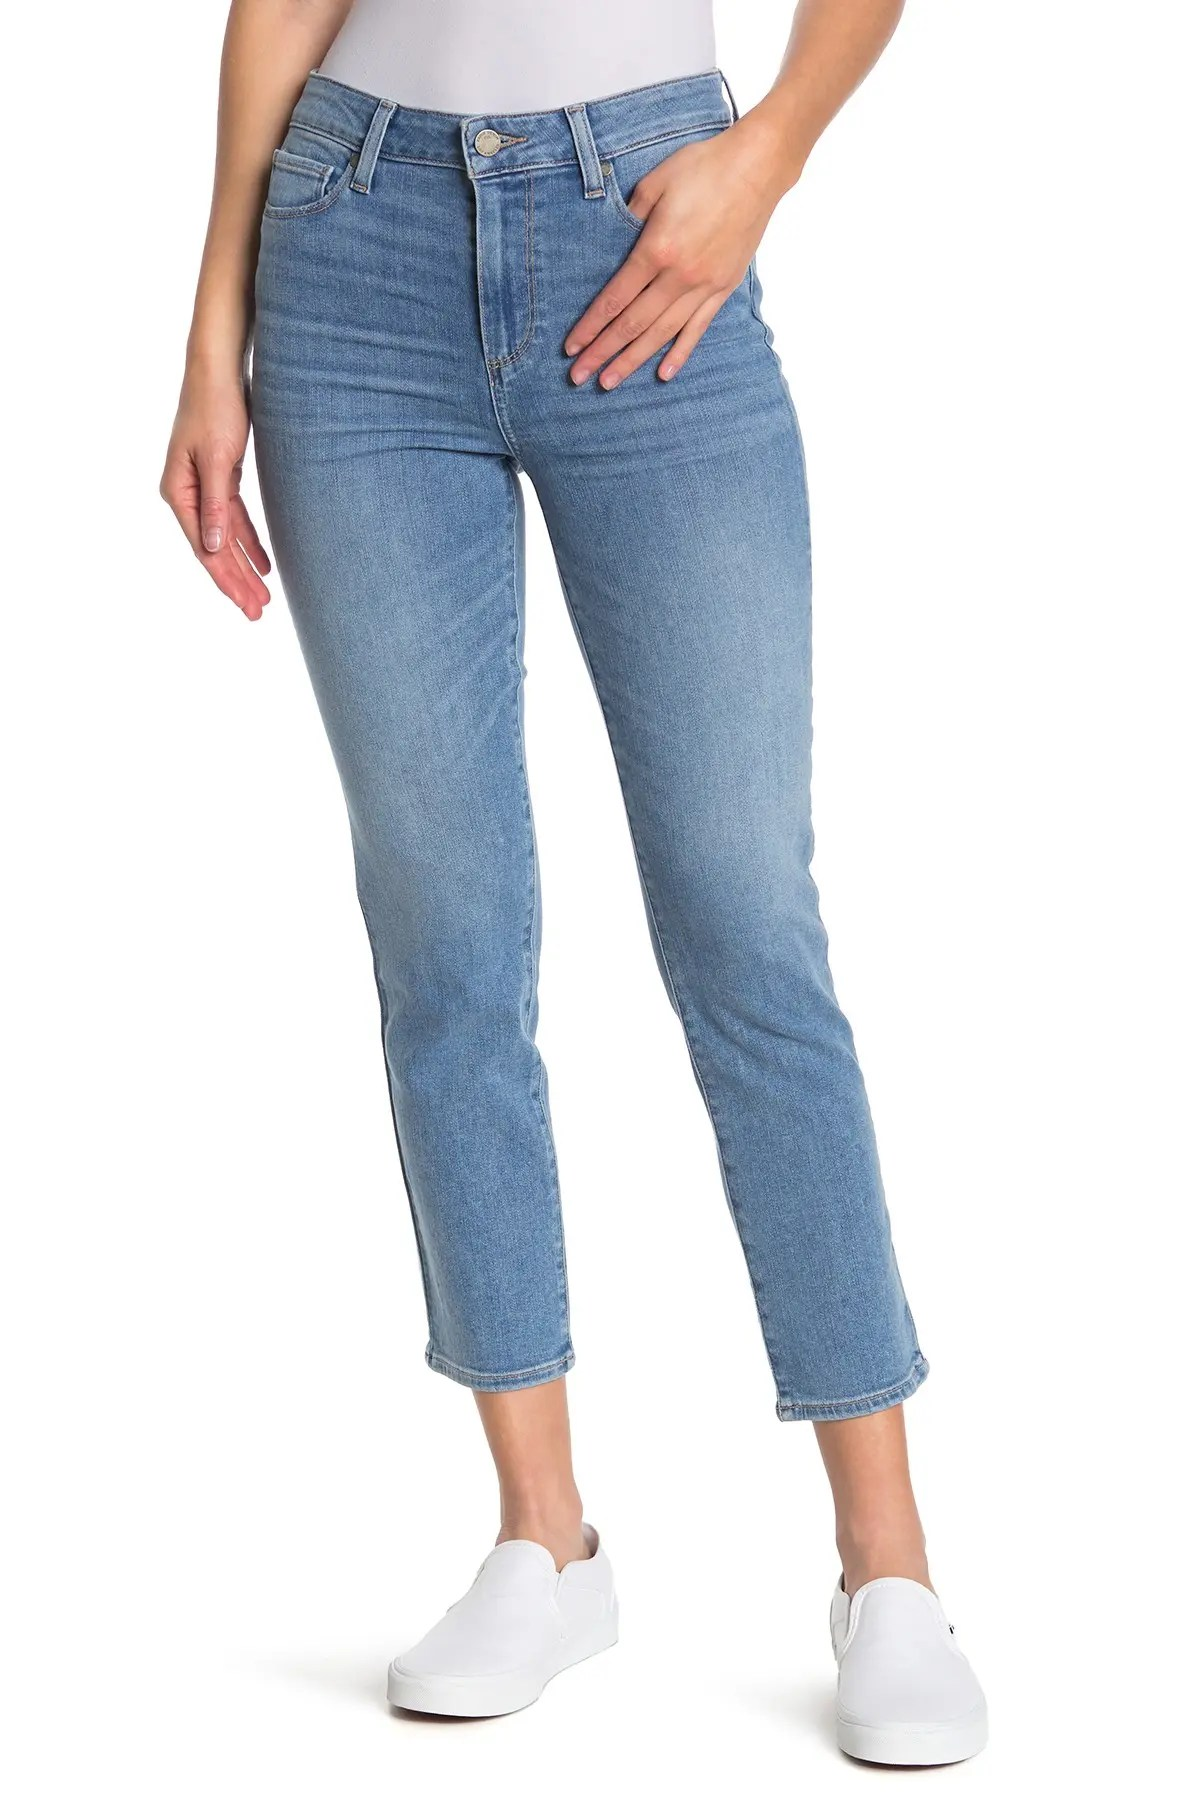 hoxton slim cropped jeans 26